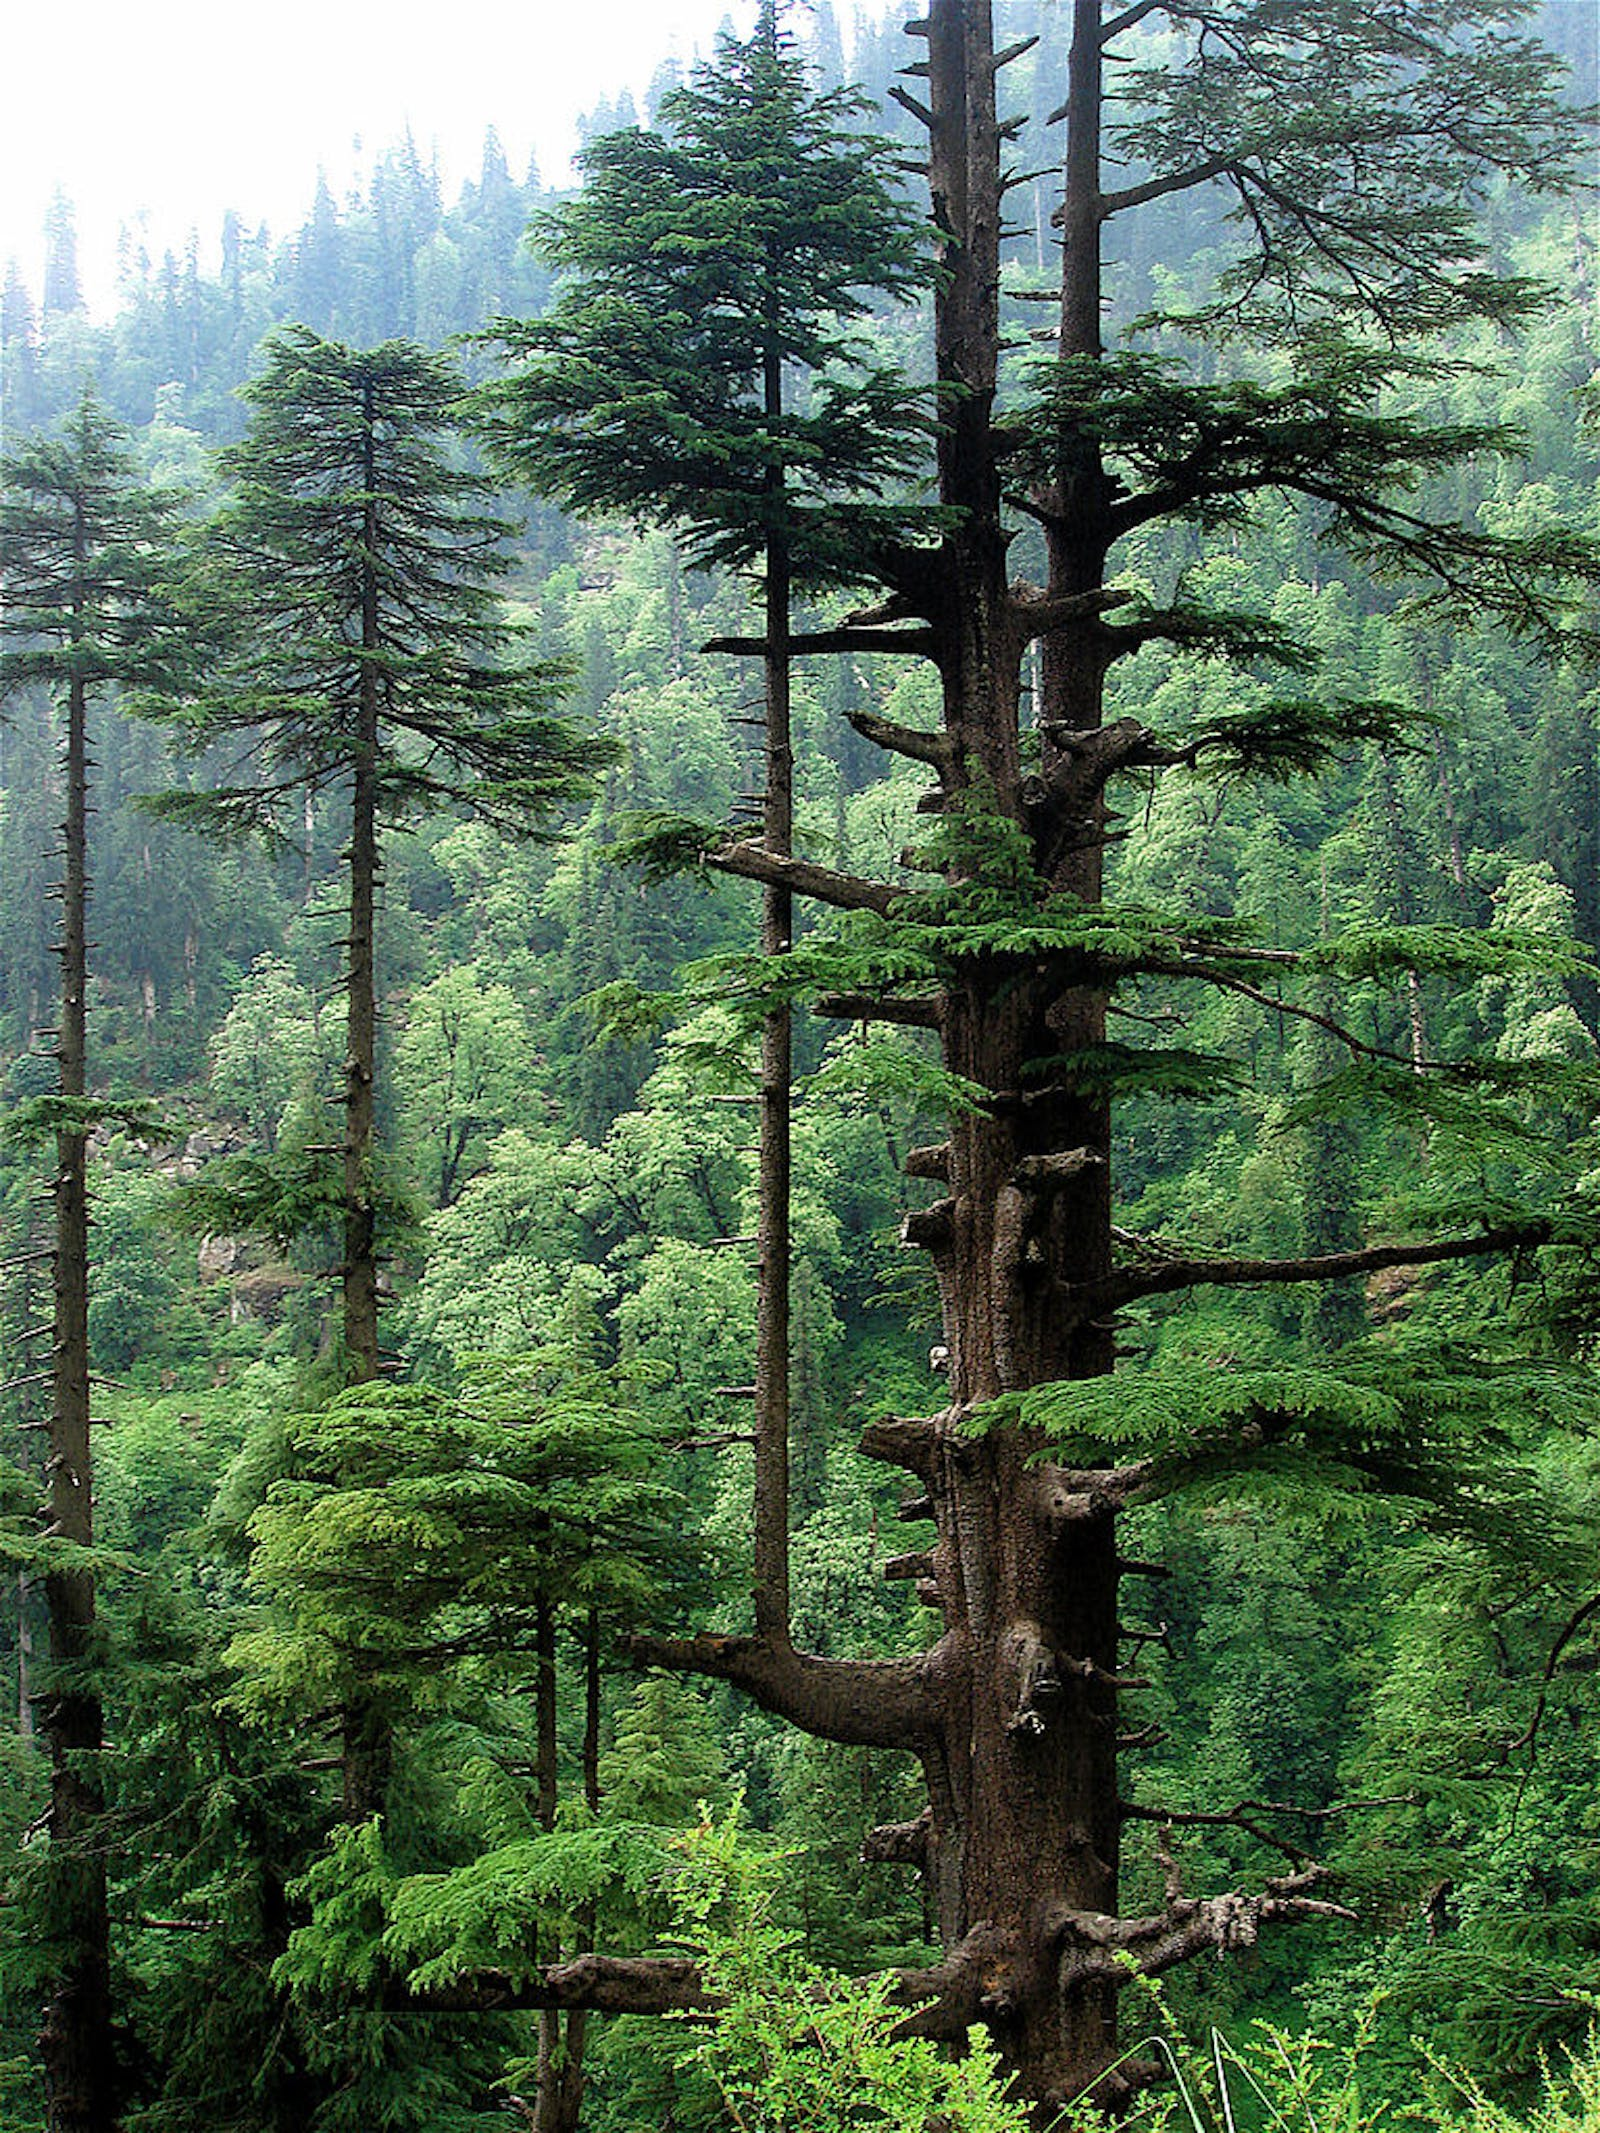 Western Himalayan Subalpine Conifer Forests